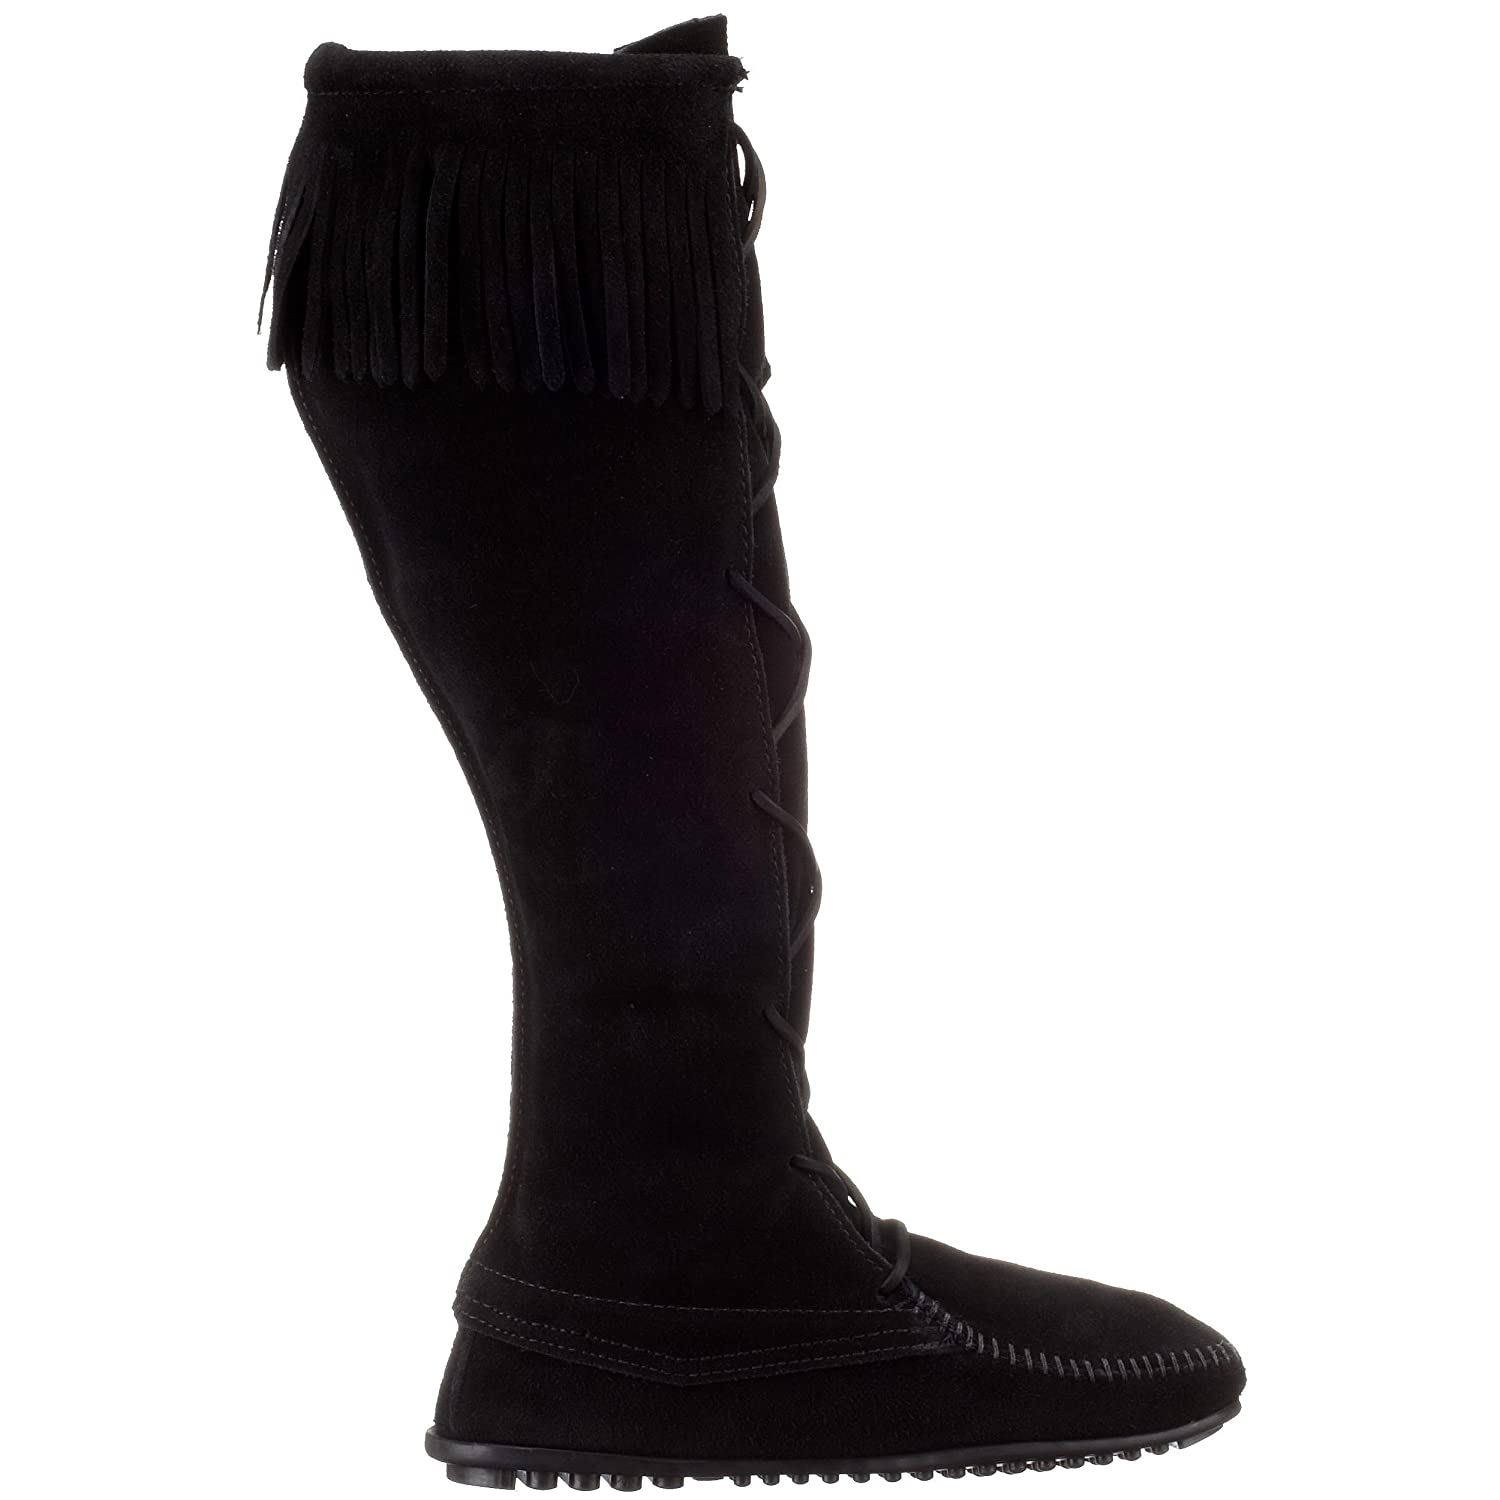 Minnetonka Women's 1429 Front Lace Knee-High Boot B0007STVVO 8 B(M) US|Black